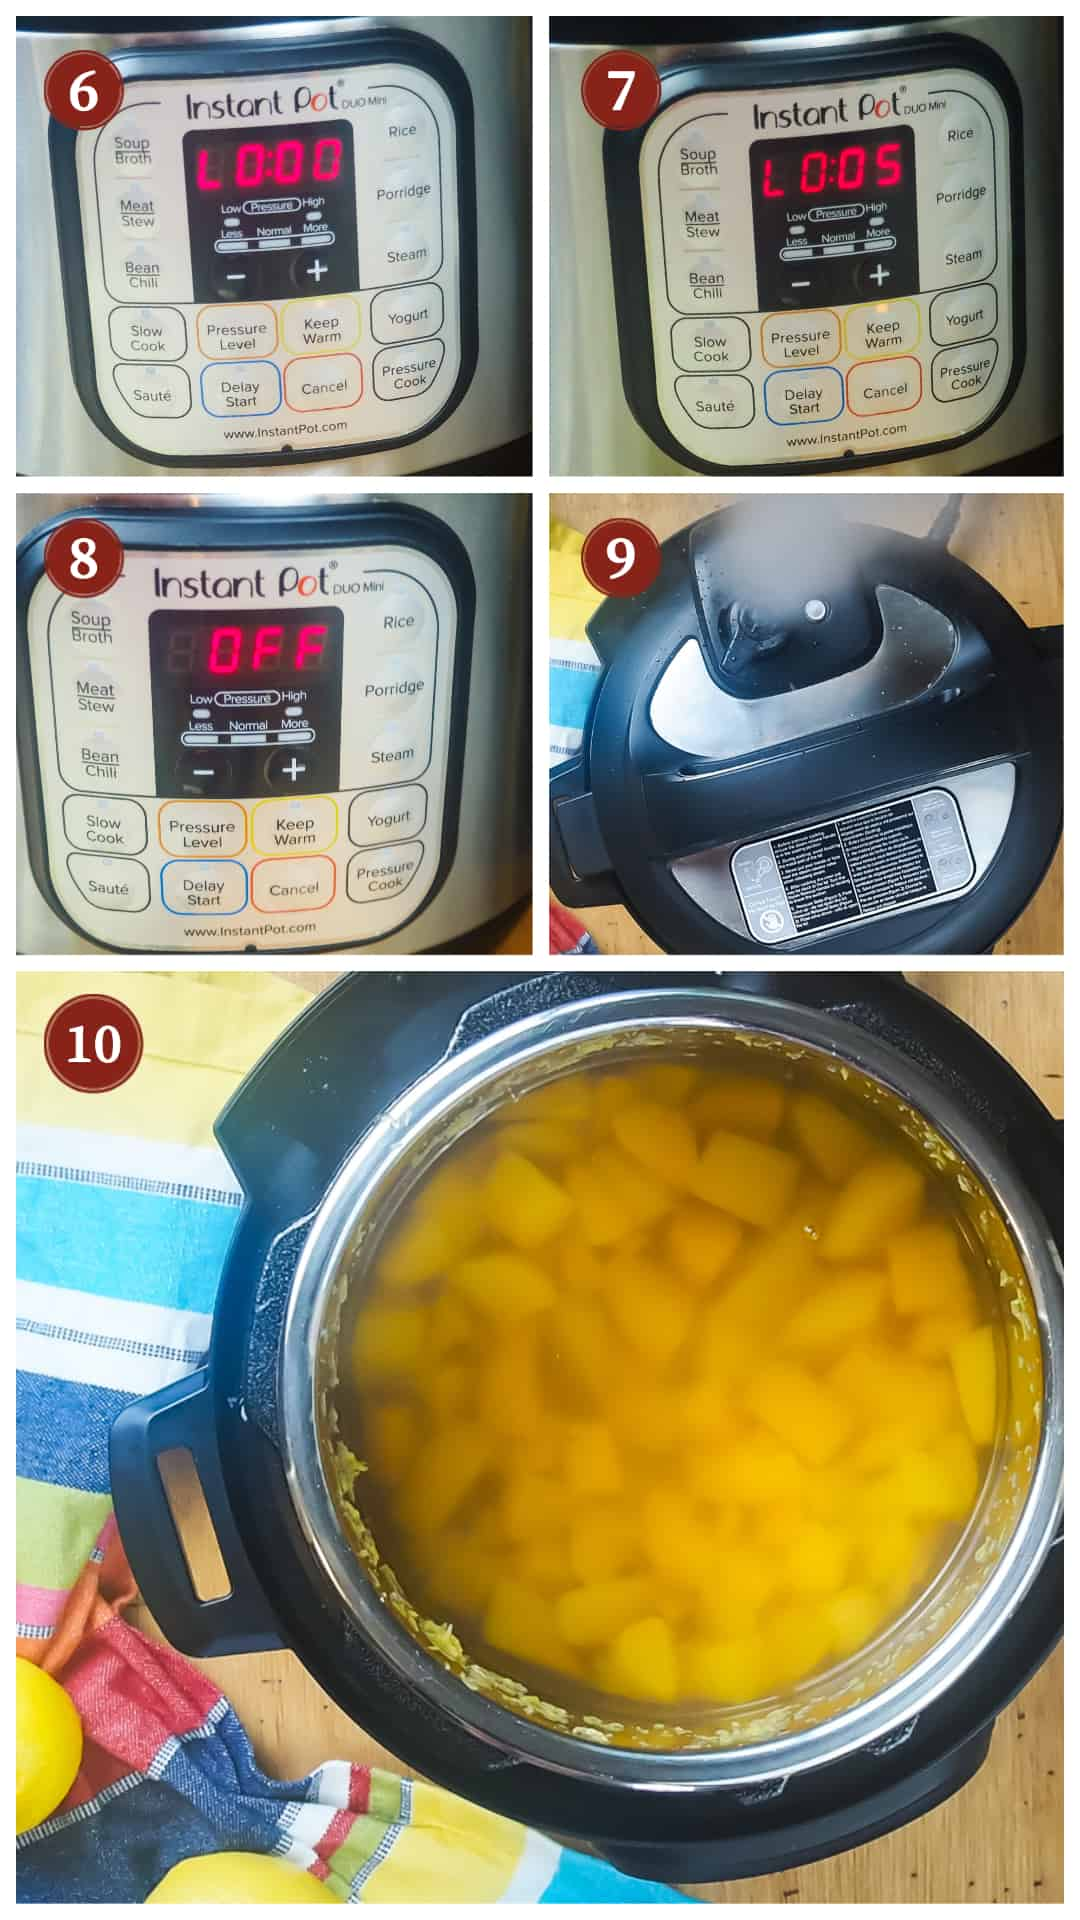 A collage of images showing the process of making peach lemonade in an Instant Pot, steps 6 - 10.